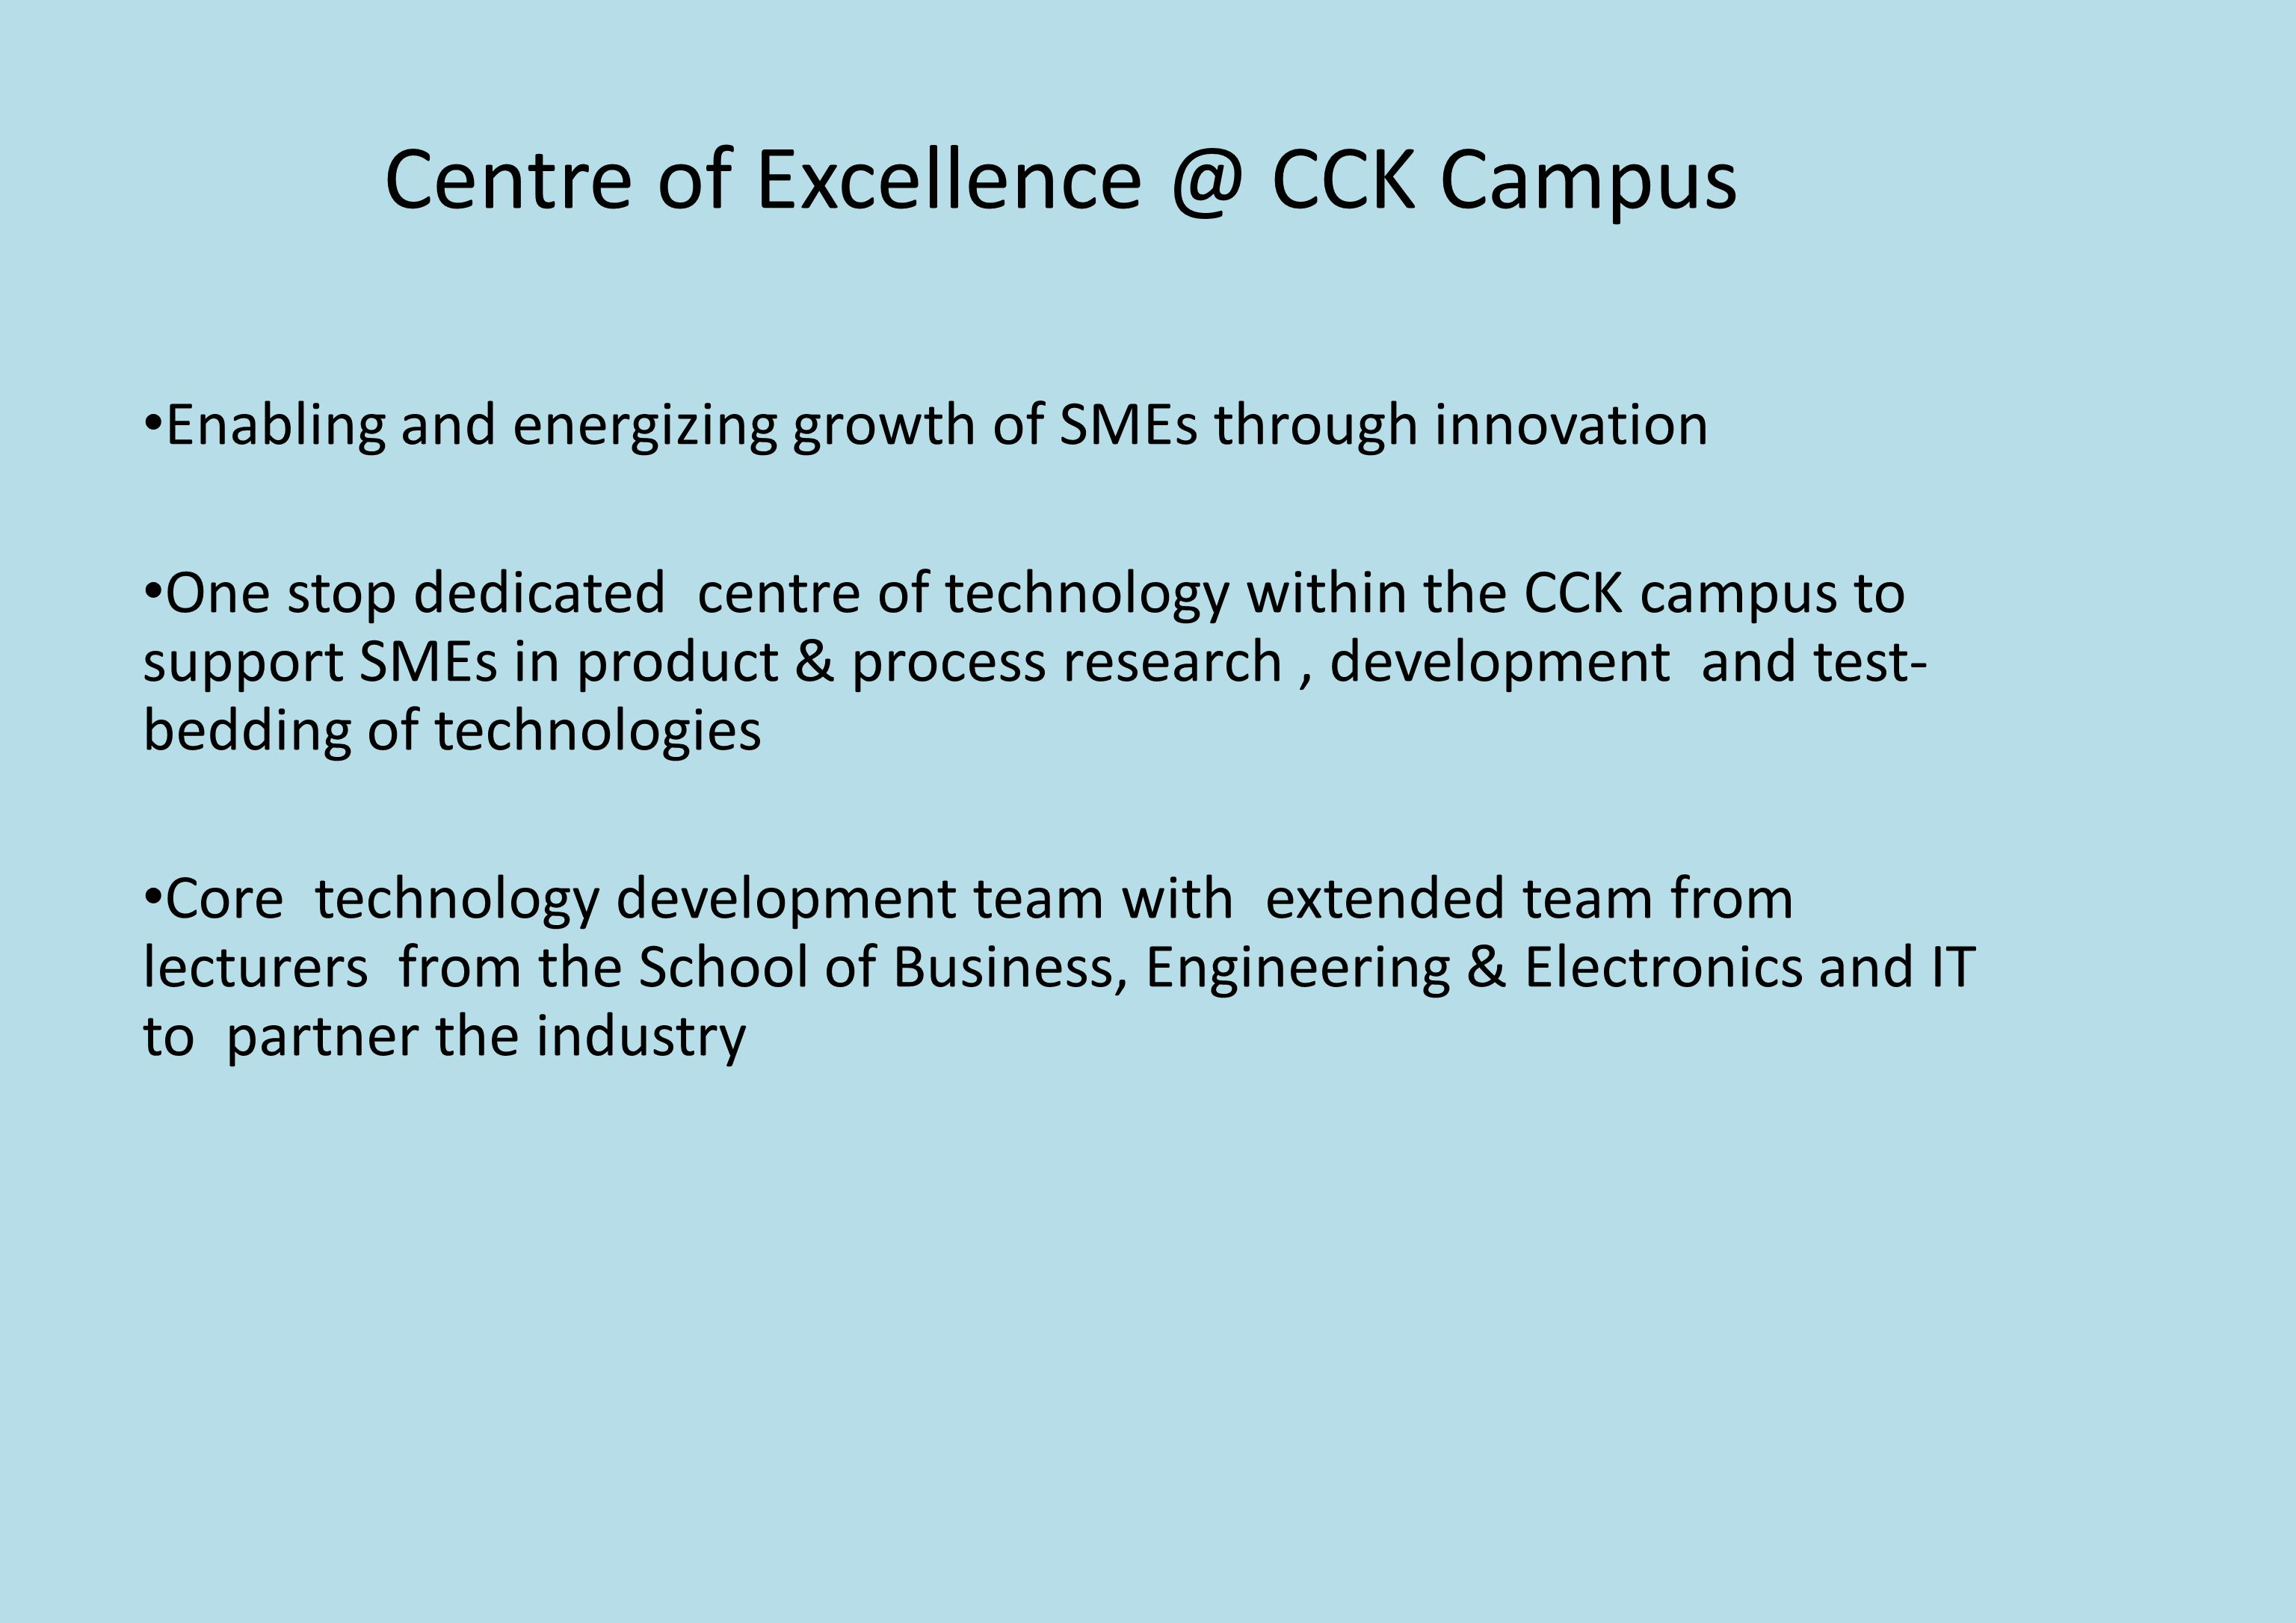 Centre of Excellence @ CCK Campus Enabling and energizing growth of SMEs through innovation One stop dedicated centre of technology within the CCK campus to support SMEs in product & process research, development and test- bedding of technologies Core technology development team with extended team from lecturers from the School of Business, Engineering & Electronics and IT to partner the industry